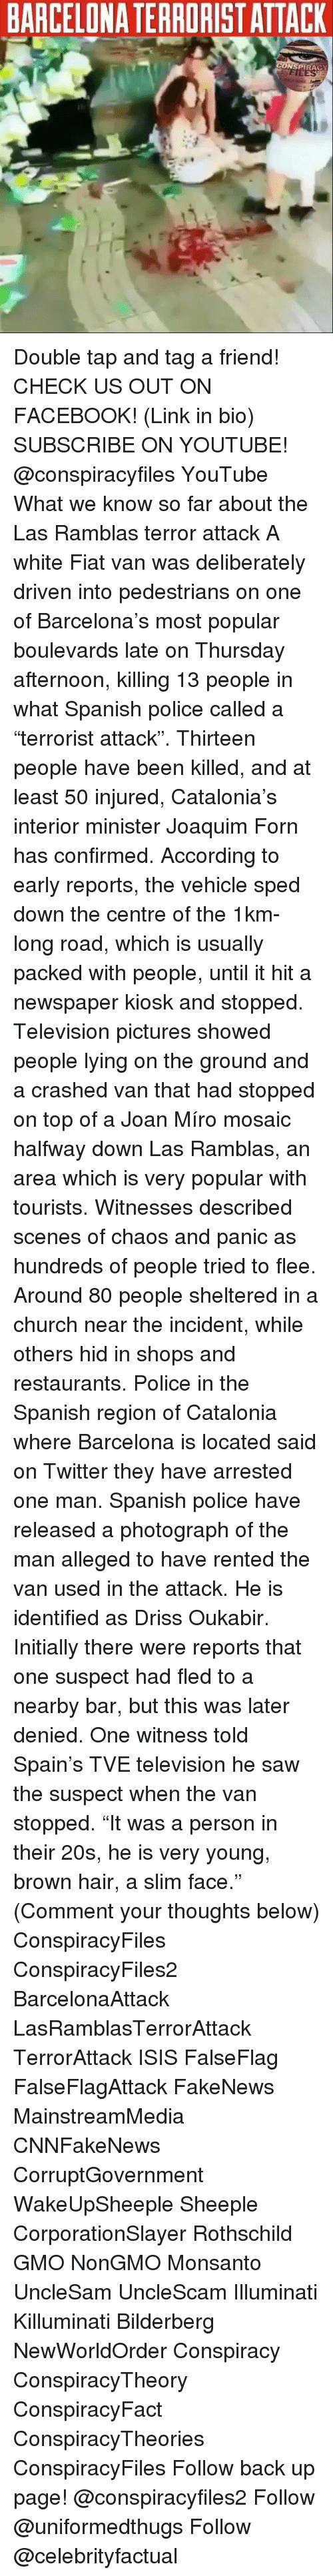 "Vanning: BARCELONA TERRORIST ATTACK Double tap and tag a friend! CHECK US OUT ON FACEBOOK! (Link in bio) SUBSCRIBE ON YOUTUBE! @conspiracyfiles YouTube What we know so far about the Las Ramblas terror attack A white Fiat van was deliberately driven into pedestrians on one of Barcelona's most popular boulevards late on Thursday afternoon, killing 13 people in what Spanish police called a ""terrorist attack"". Thirteen people have been killed, and at least 50 injured, Catalonia's interior minister Joaquim Forn has confirmed. According to early reports, the vehicle sped down the centre of the 1km-long road, which is usually packed with people, until it hit a newspaper kiosk and stopped. Television pictures showed people lying on the ground and a crashed van that had stopped on top of a Joan Míro mosaic halfway down Las Ramblas, an area which is very popular with tourists. Witnesses described scenes of chaos and panic as hundreds of people tried to flee. Around 80 people sheltered in a church near the incident, while others hid in shops and restaurants. Police in the Spanish region of Catalonia where Barcelona is located said on Twitter they have arrested one man. Spanish police have released a photograph of the man alleged to have rented the van used in the attack. He is identified as Driss Oukabir. Initially there were reports that one suspect had fled to a nearby bar, but this was later denied. One witness told Spain's TVE television he saw the suspect when the van stopped. ""It was a person in their 20s, he is very young, brown hair, a slim face."" (Comment your thoughts below) ConspiracyFiles ConspiracyFiles2 BarcelonaAttack LasRamblasTerrorAttack TerrorAttack ISIS FalseFlag FalseFlagAttack FakeNews MainstreamMedia CNNFakeNews CorruptGovernment WakeUpSheeple Sheeple CorporationSlayer Rothschild GMO NonGMO Monsanto UncleSam UncleScam Illuminati Killuminati Bilderberg NewWorldOrder Conspiracy ConspiracyTheory ConspiracyFact ConspiracyTheories ConspiracyFiles Follow back up page! @conspiracyfiles2 Follow @uniformedthugs Follow @celebrityfactual"